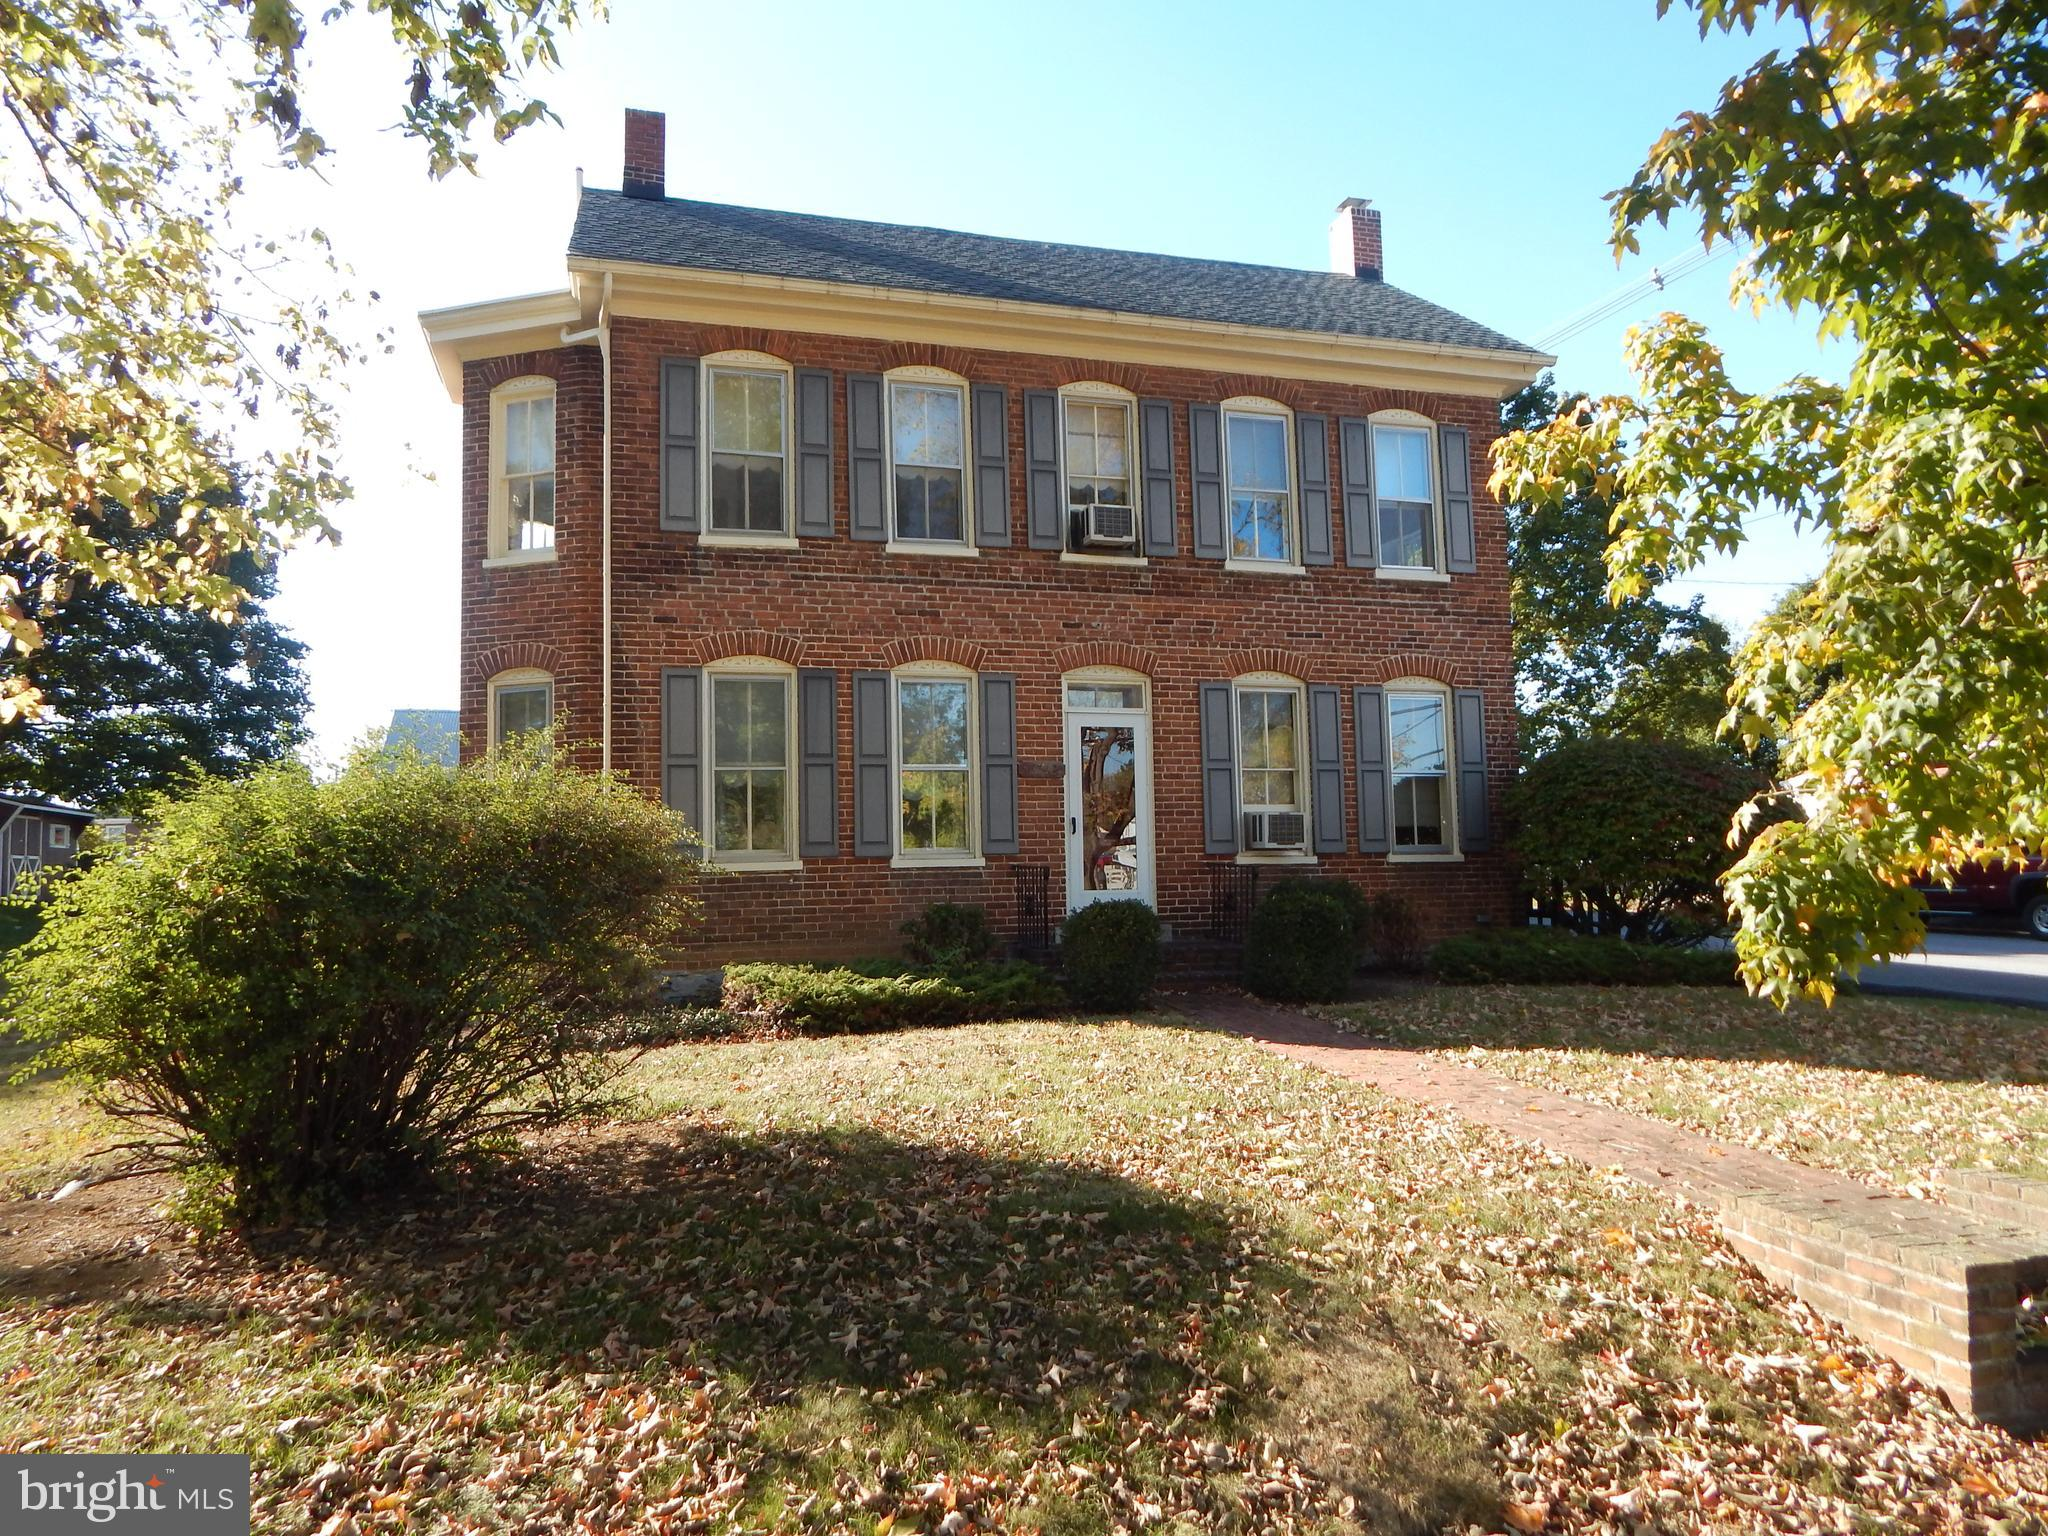 13742 MAUGANSVILLE ROAD, MAUGANSVILLE, MD 21767